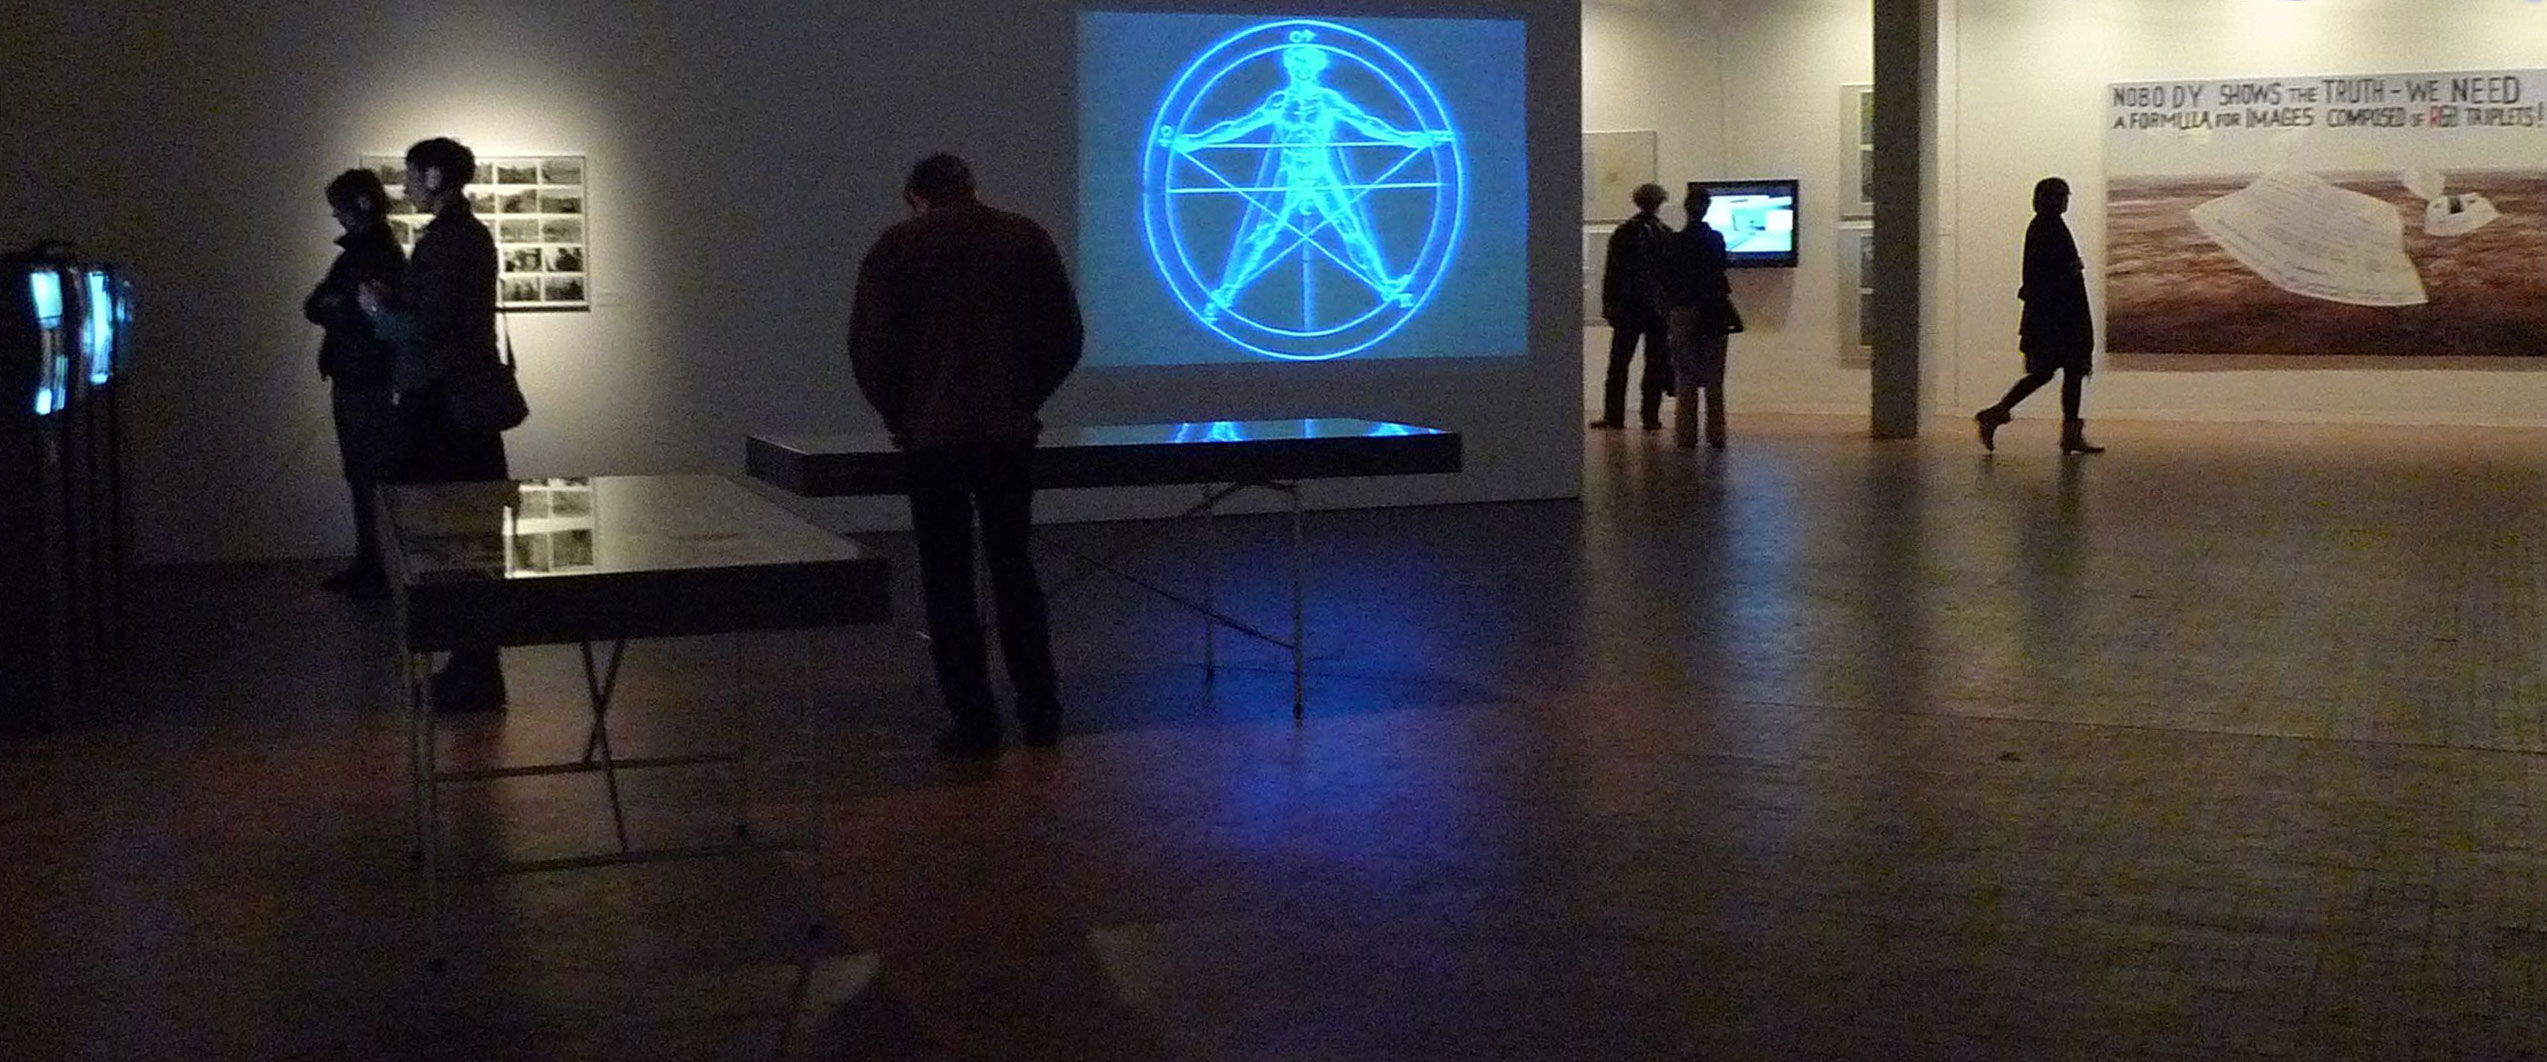 Installation view of the exhibition in Berlin